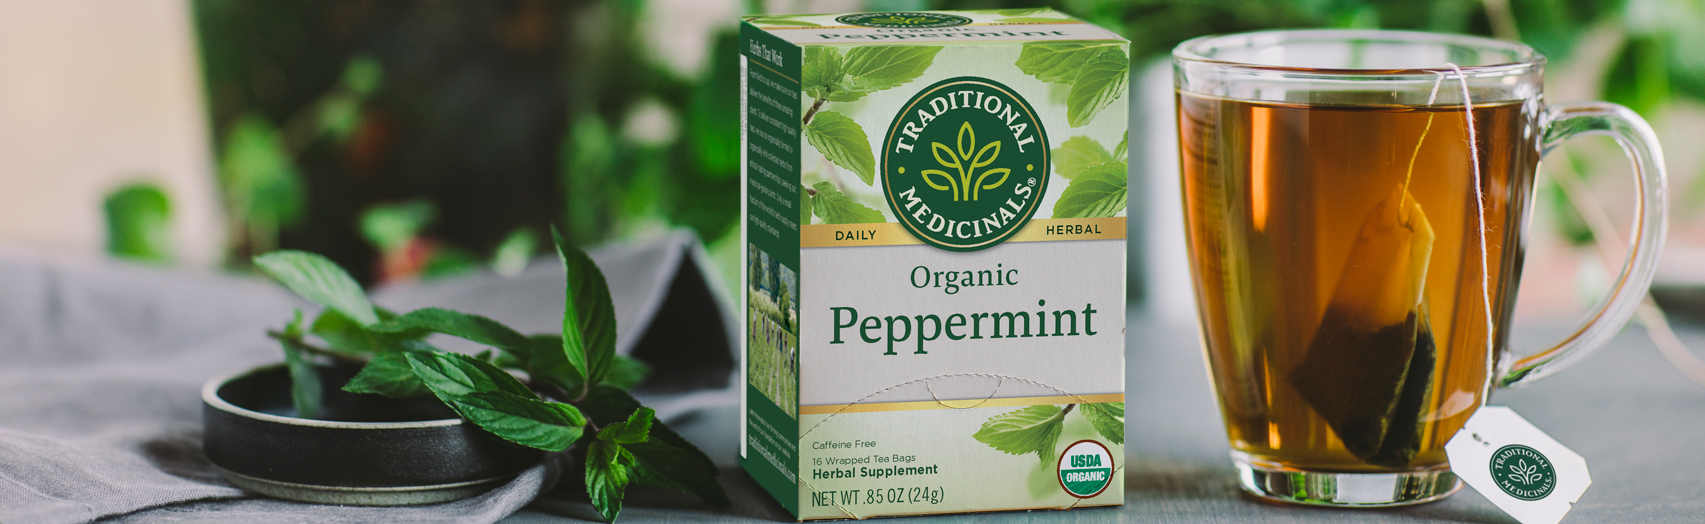 Peppermint tea next to fresh peppermint leaves and steeping mug